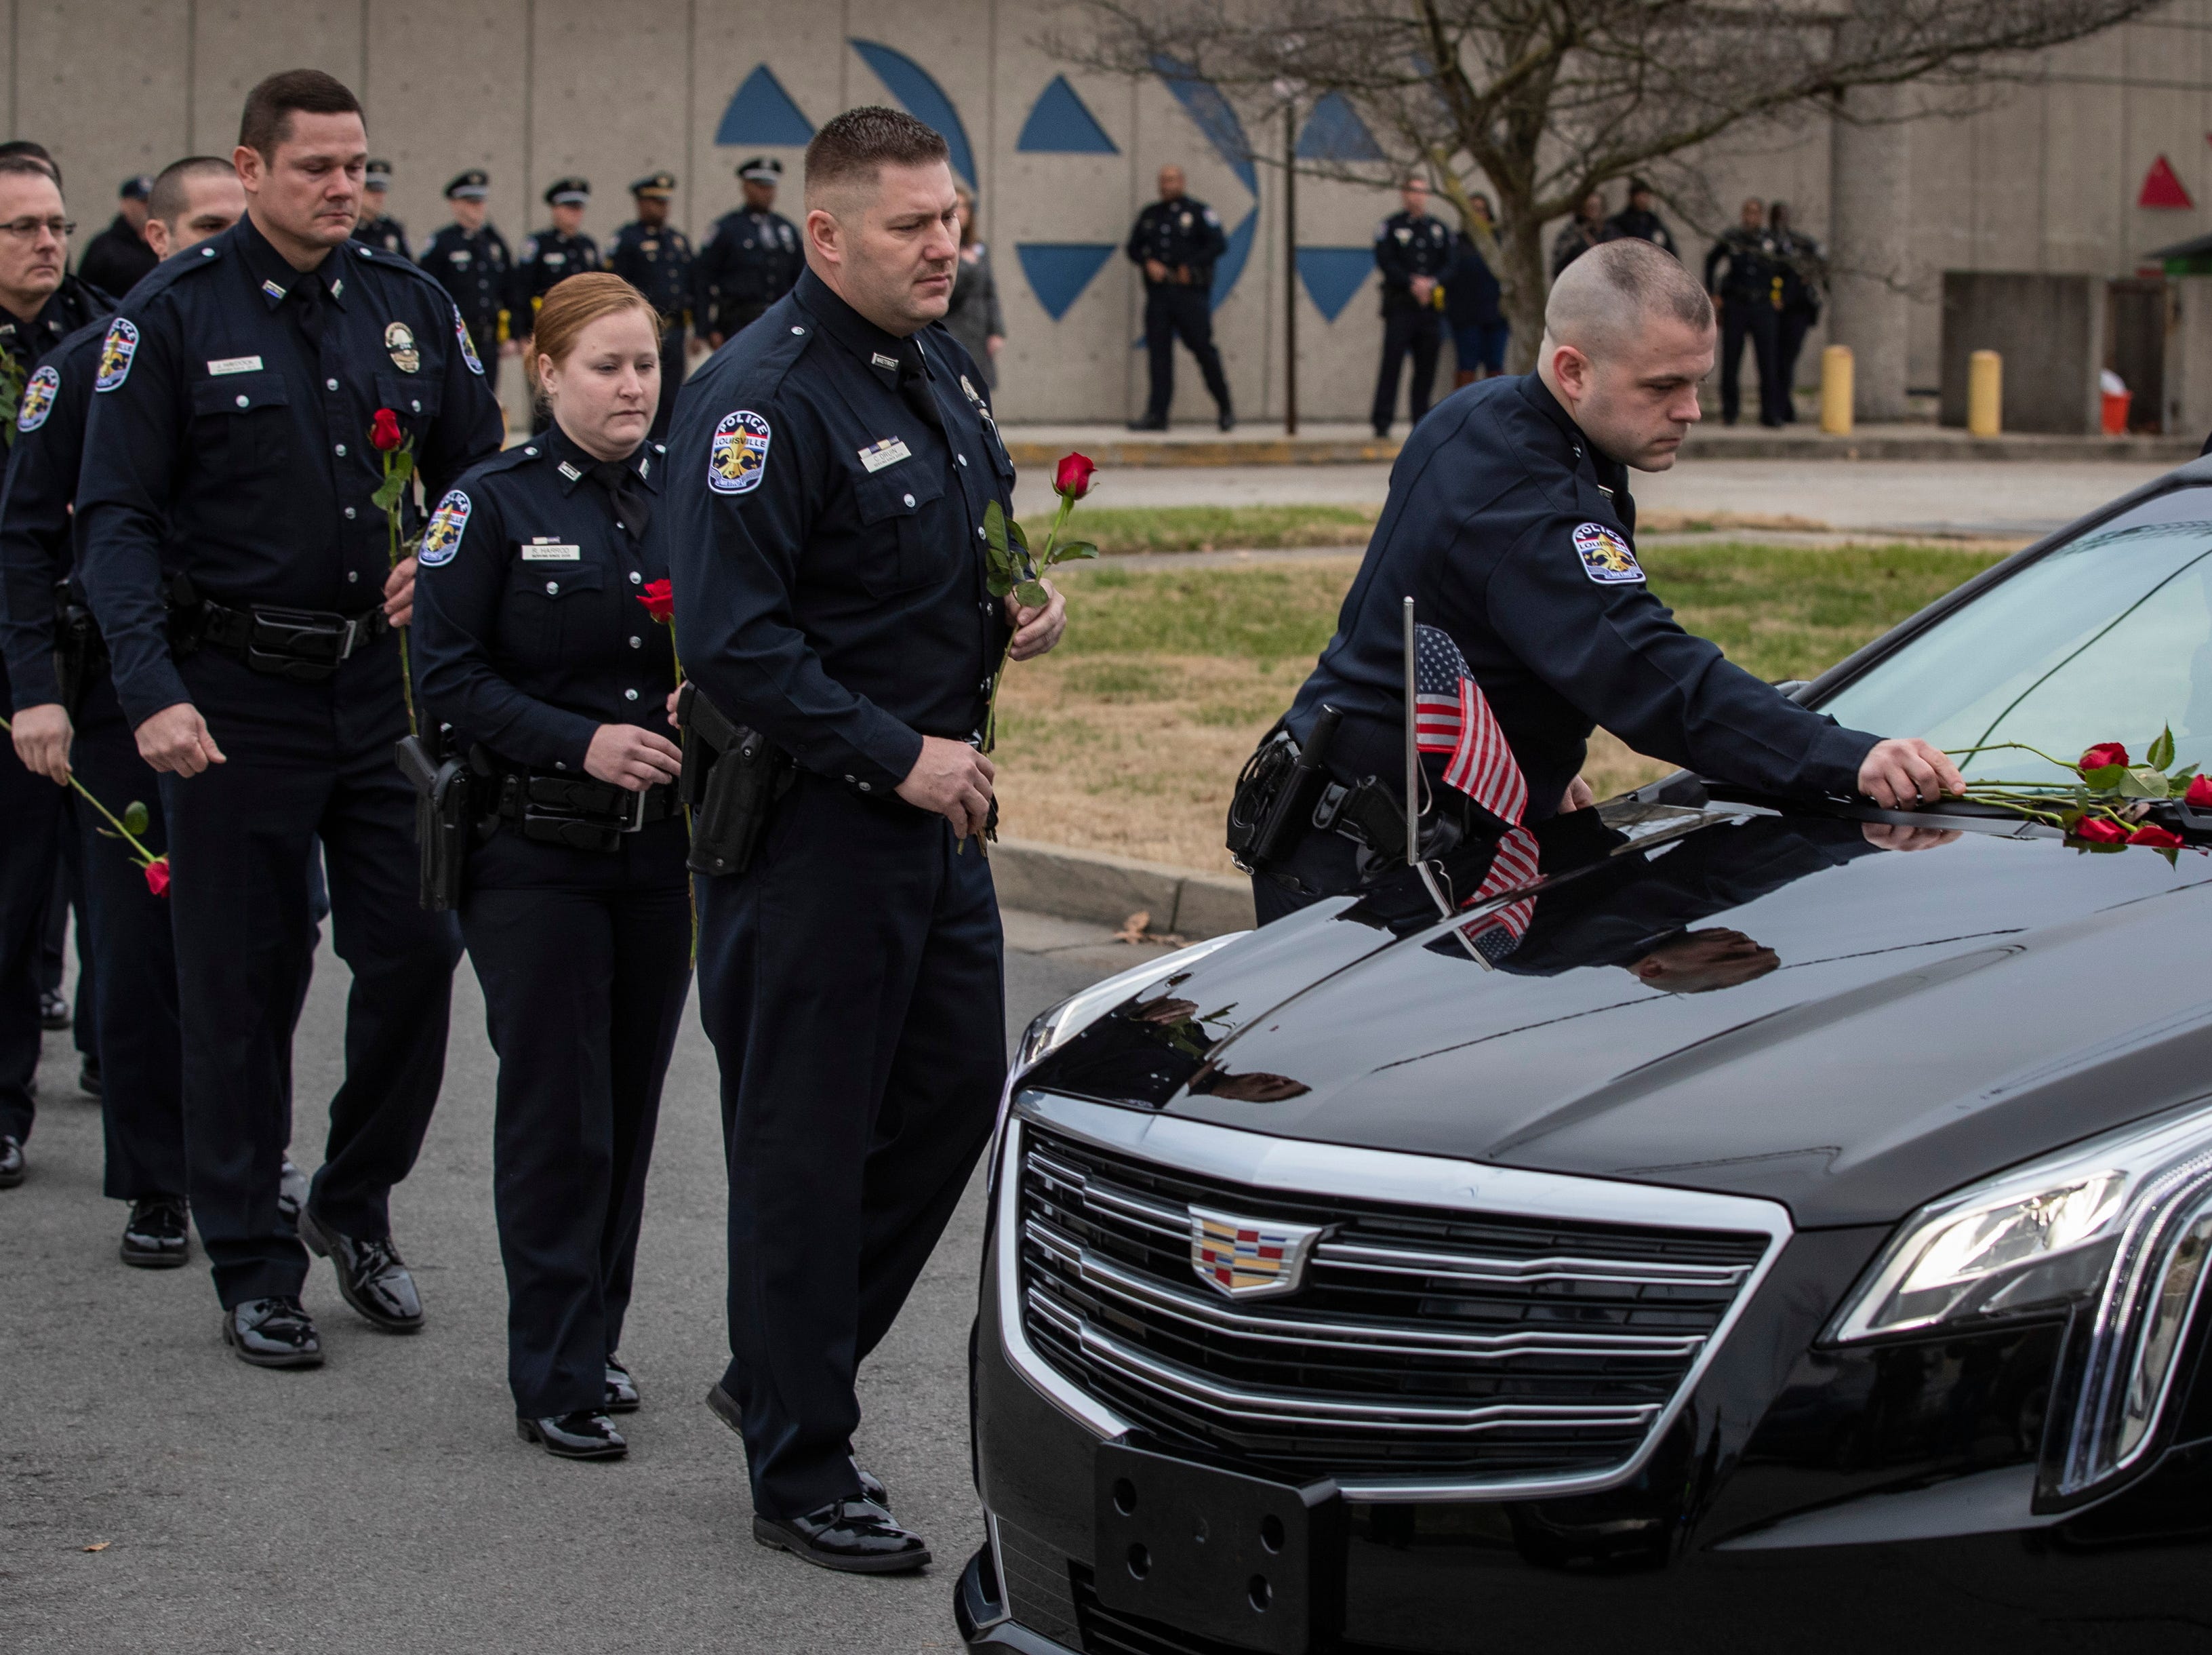 Police officers lay roses onto the hearse carrying Deidre Mengedoht as it stops at the LMPD 2nd Division headquarters in Park DuValle in Louisville, Ky. December 29, 2018